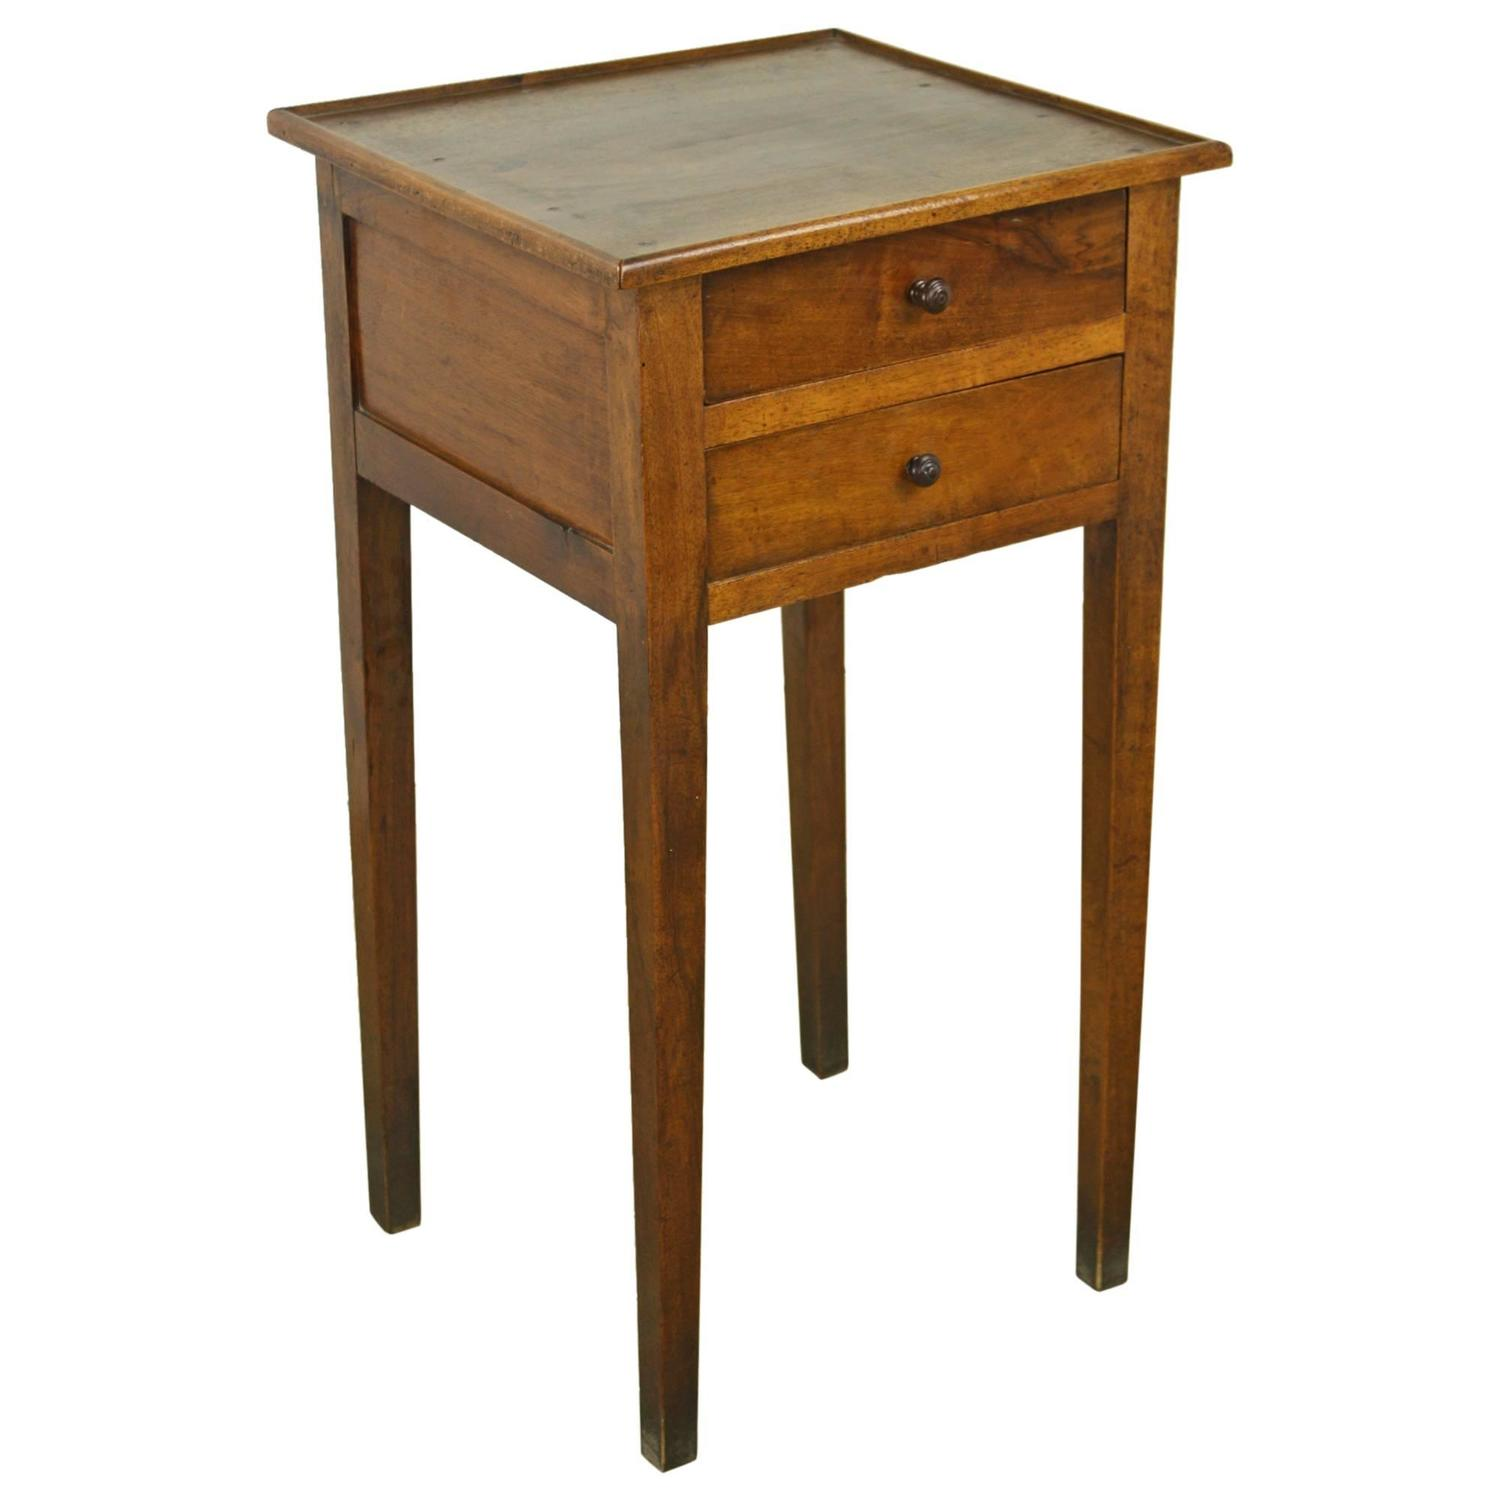 Antique french walnut side table at 1stdibs for Walnut side table